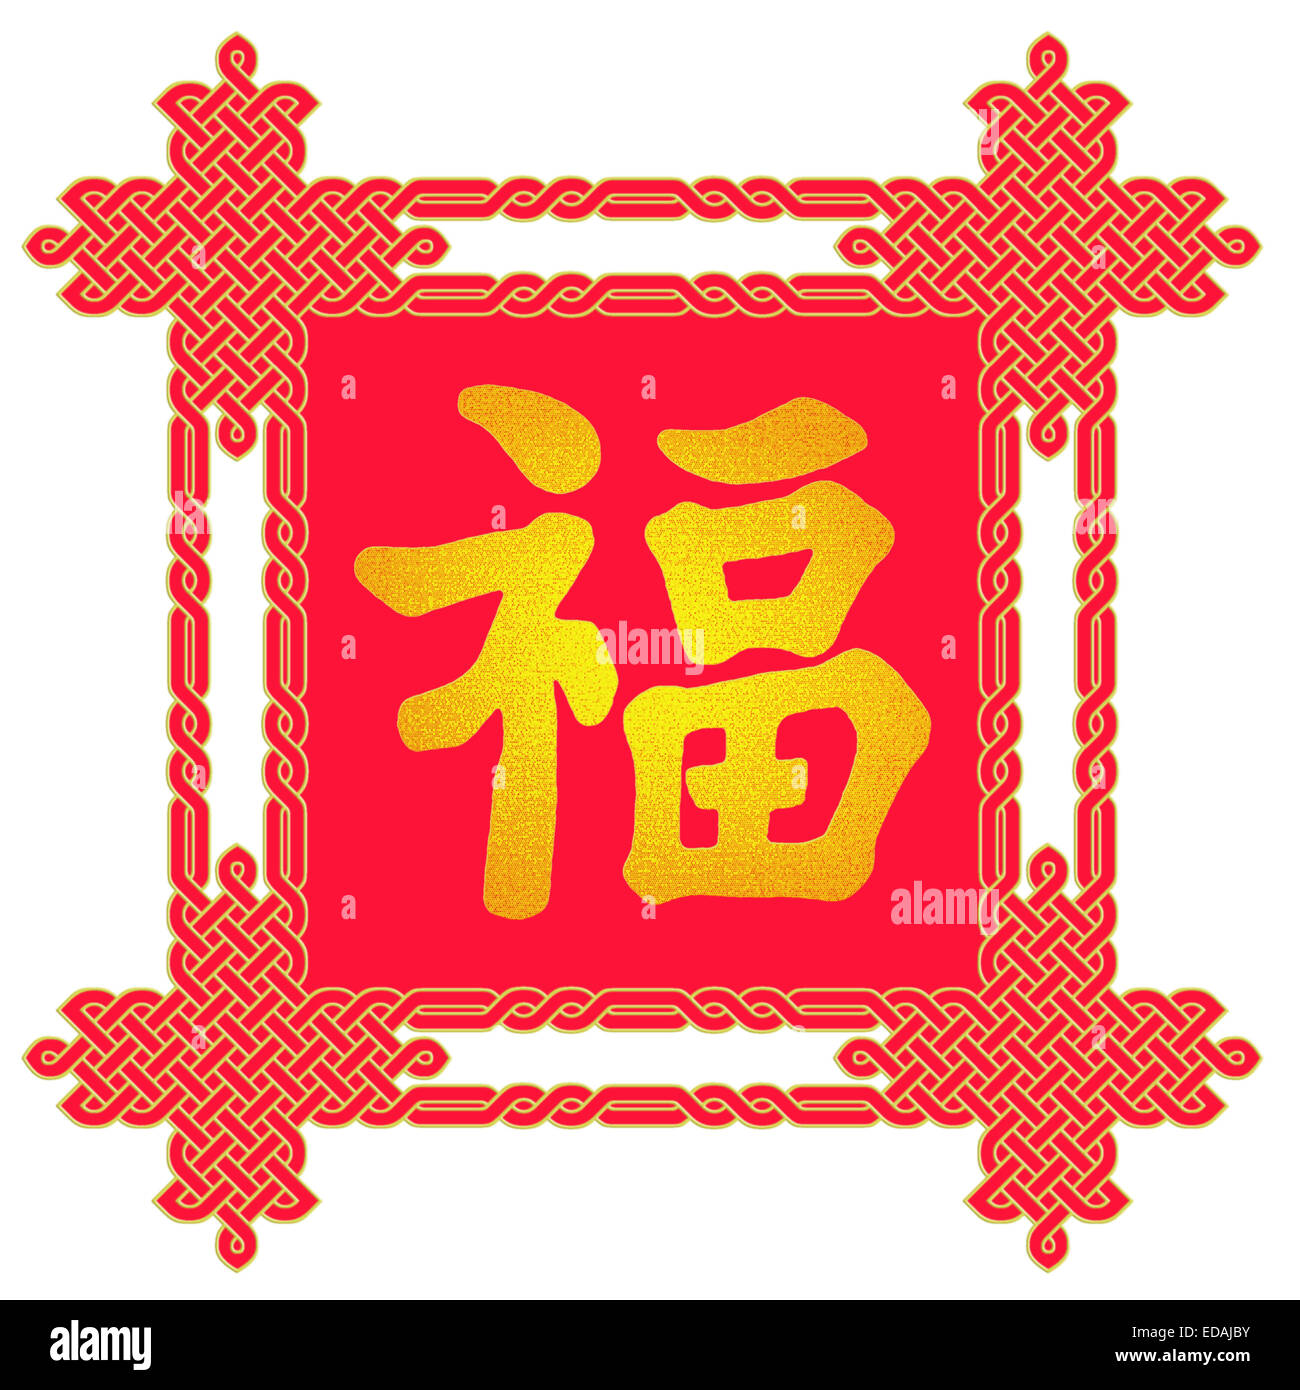 Chinese new year symbol on knot background easily invertable if chinese new year symbol on knot background easily invertable if necessary buycottarizona Gallery